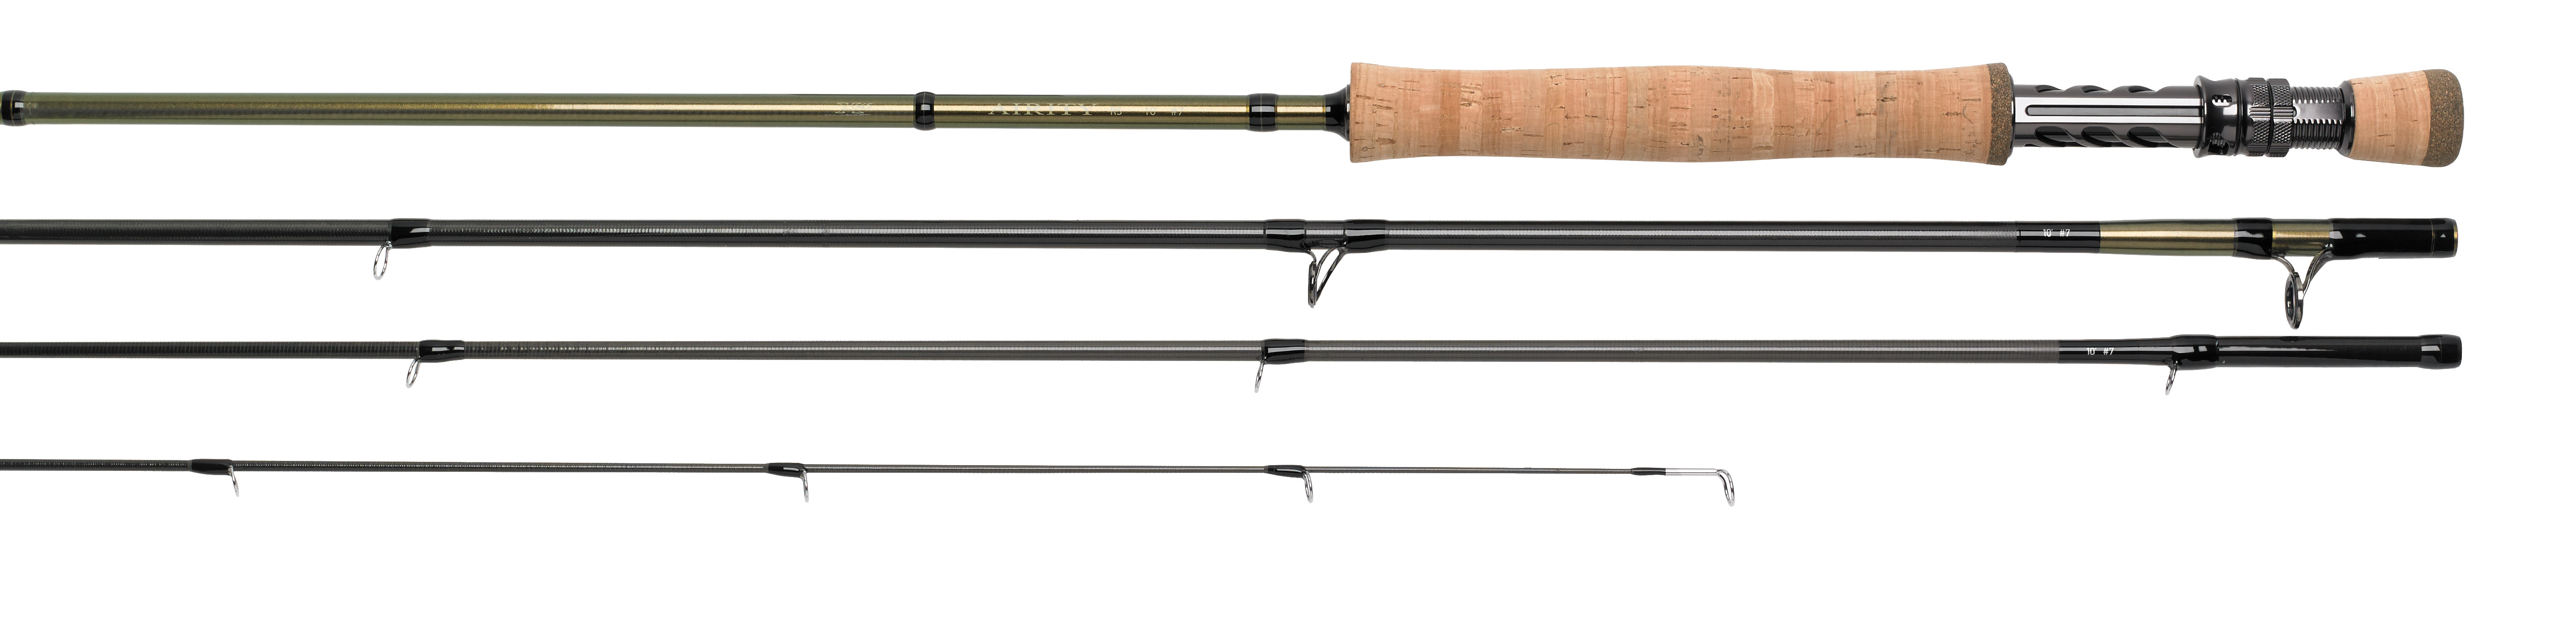 Daiwa airity x45 fly rods glasgow angling centre for Daiwa fishing rods